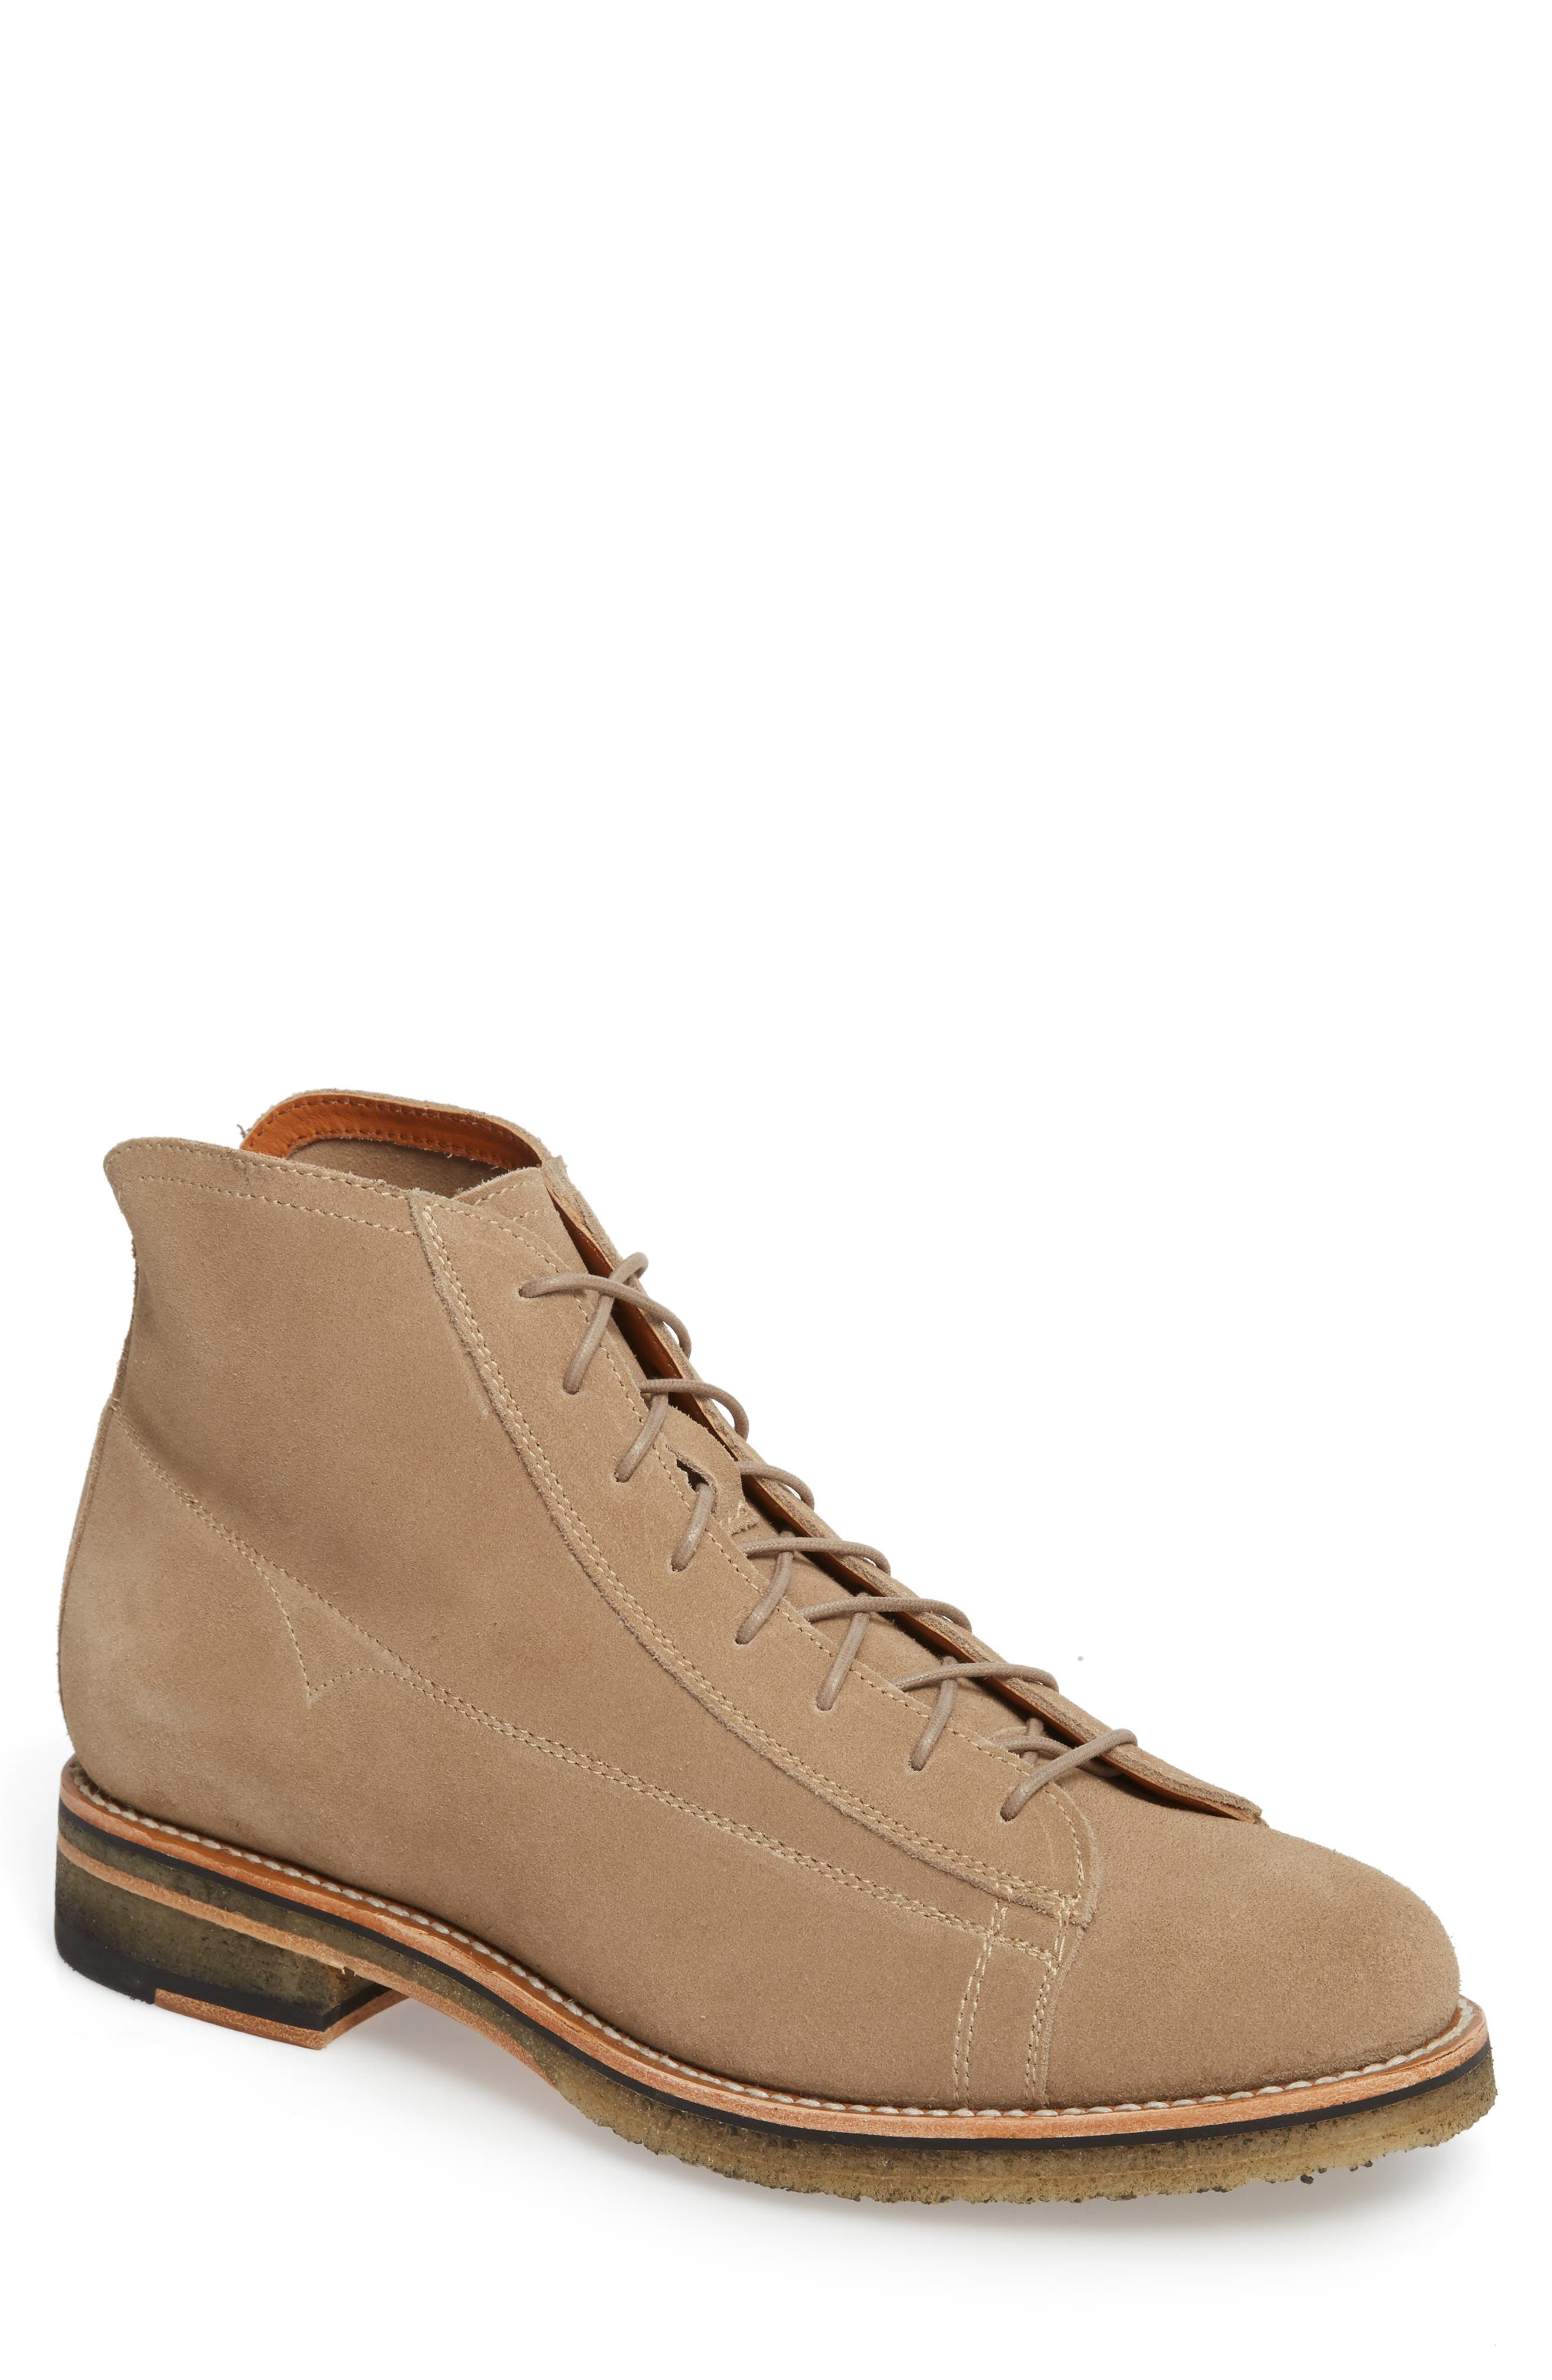 Two24 by Ariat Webster Boot,                             Main thumbnail 1, color,                             Biscotti Suede